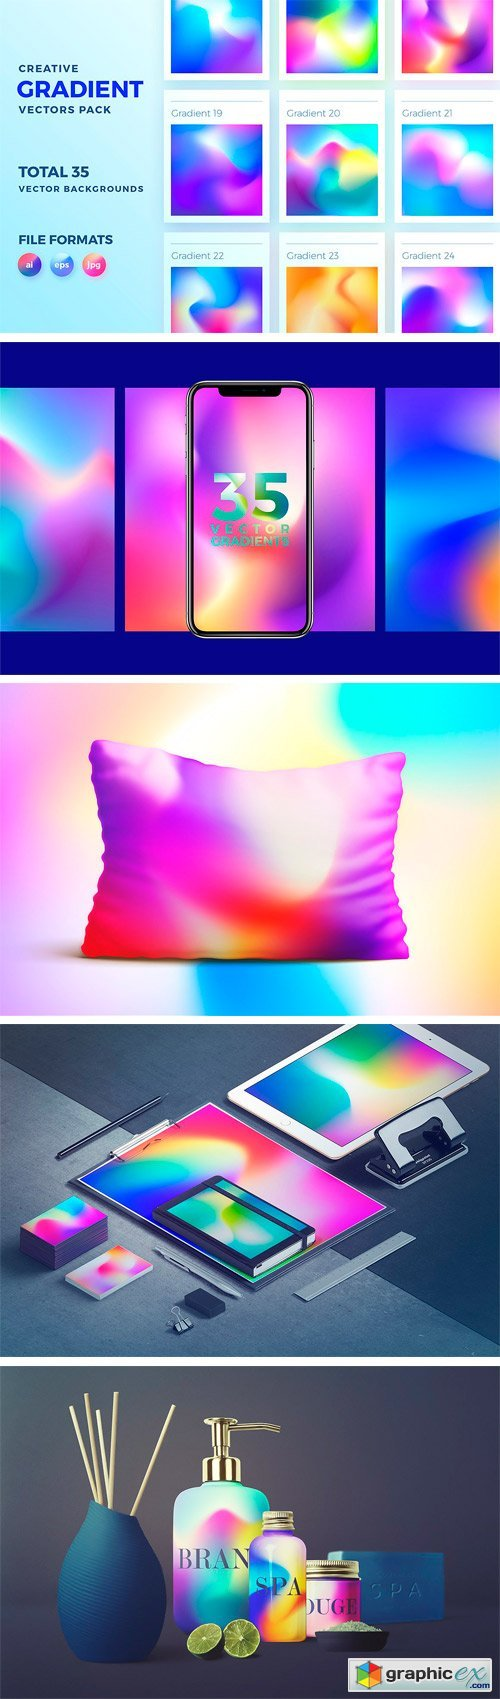 Creative Gradient Backgrounds Pack